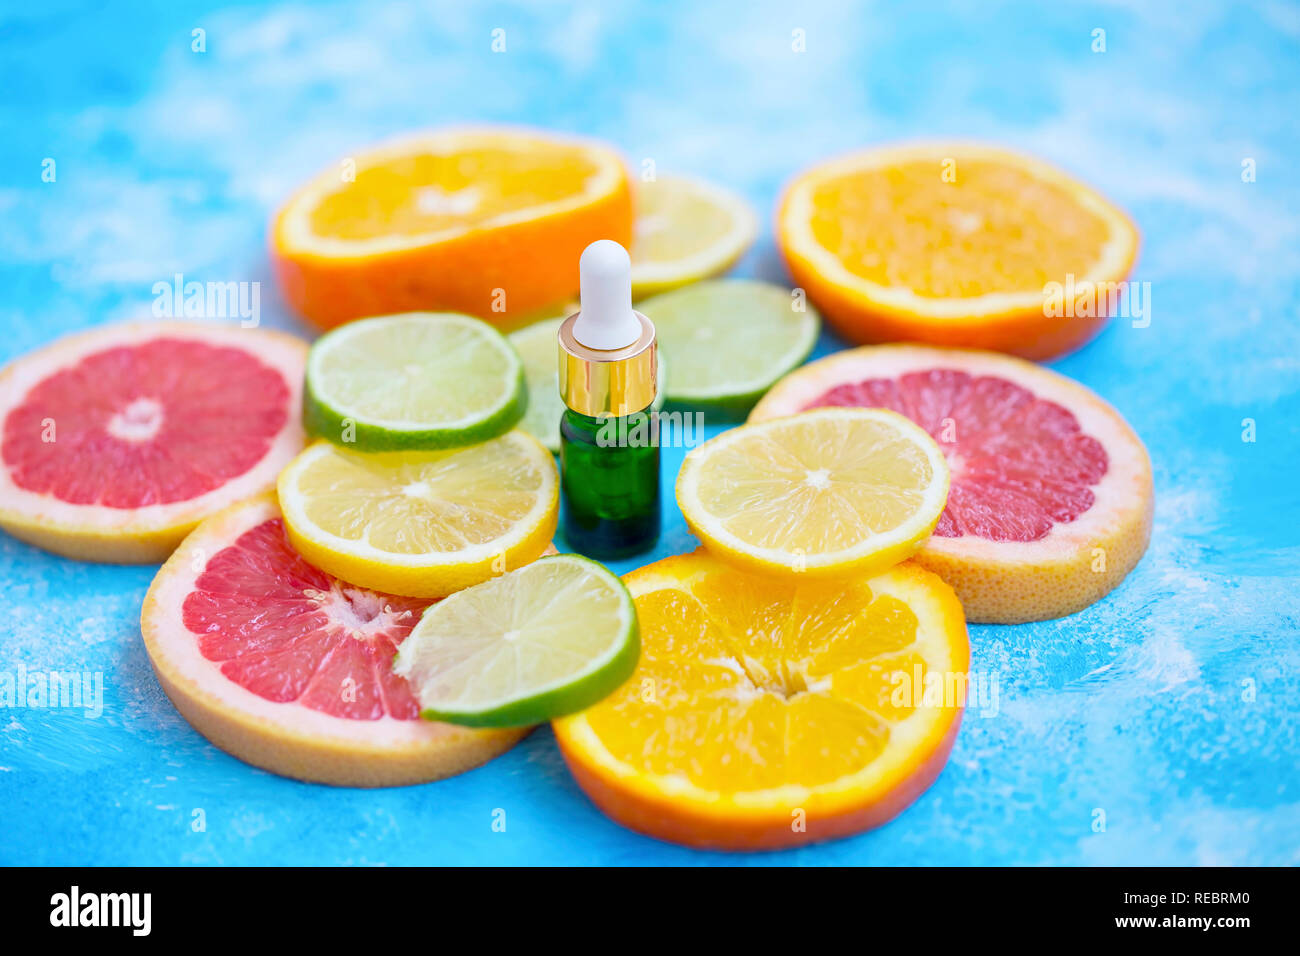 Herbal Extracts Stock Photos & Herbal Extracts Stock Images - Alamy